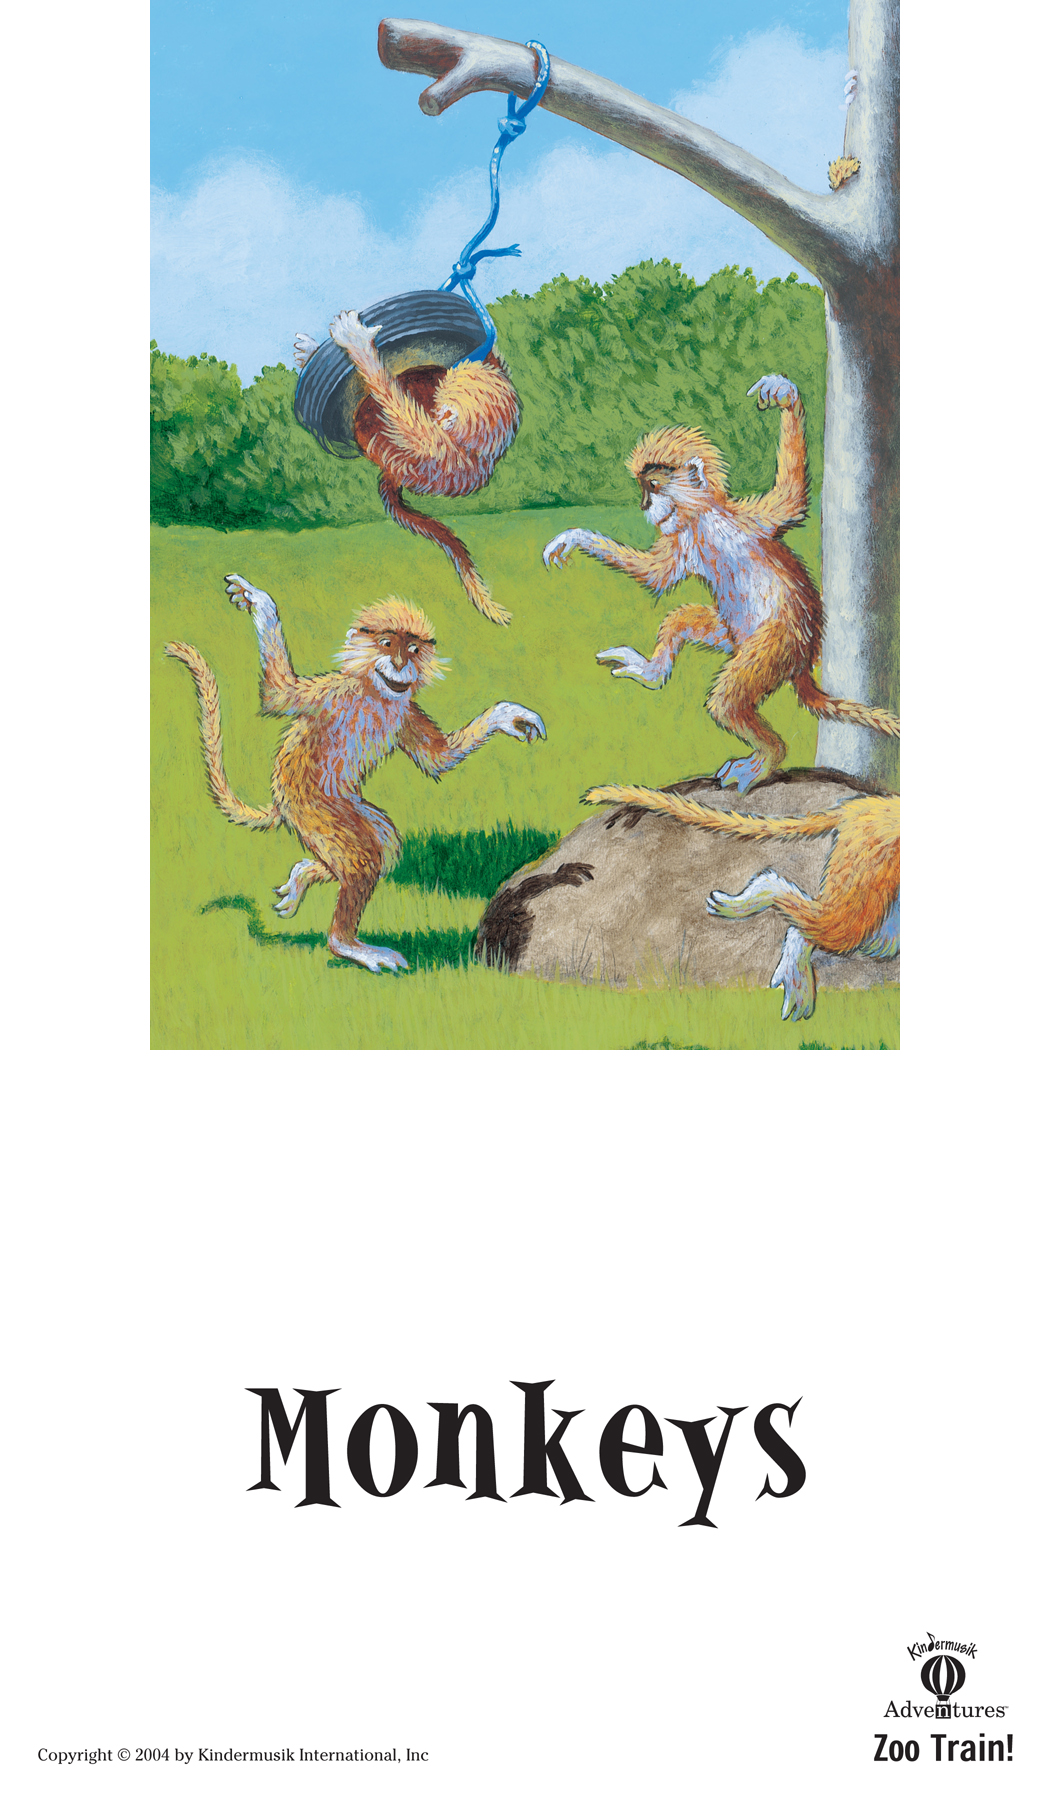 Developing Imaginative Play as Monkeys